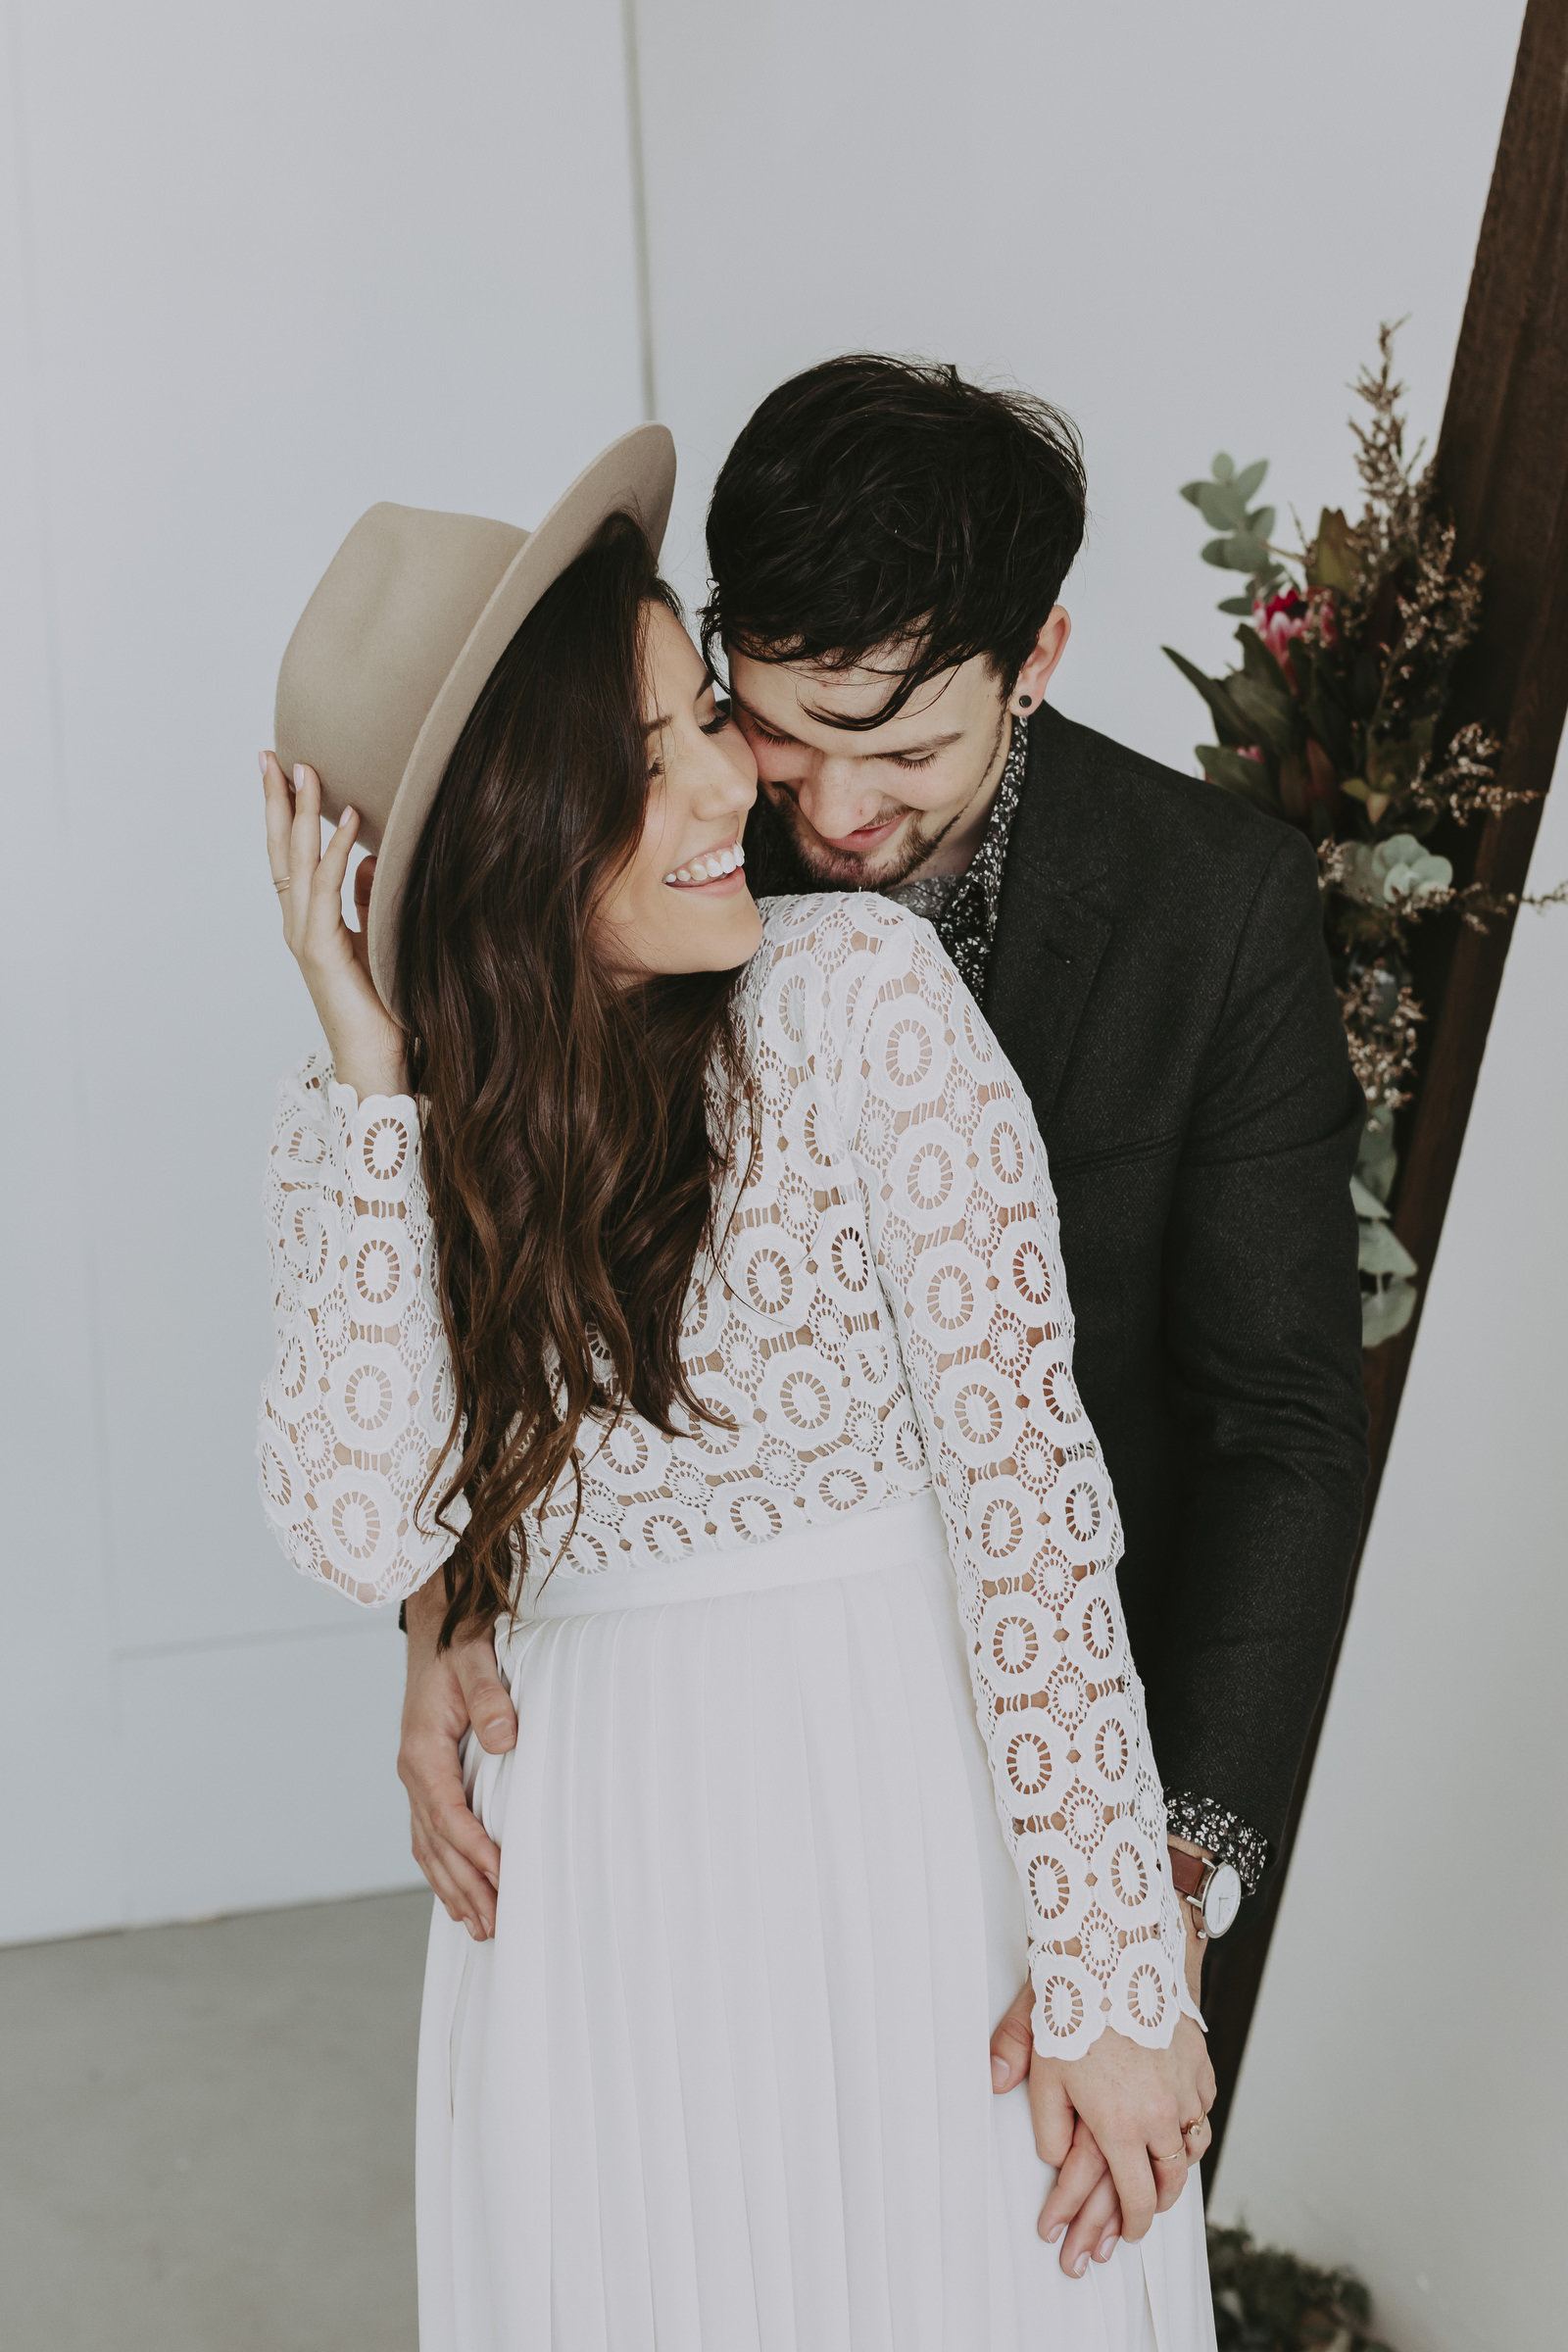 athena-and-camron-sydney-wedding-boho-romance-james-simmons-photography-christian-couple-goals26